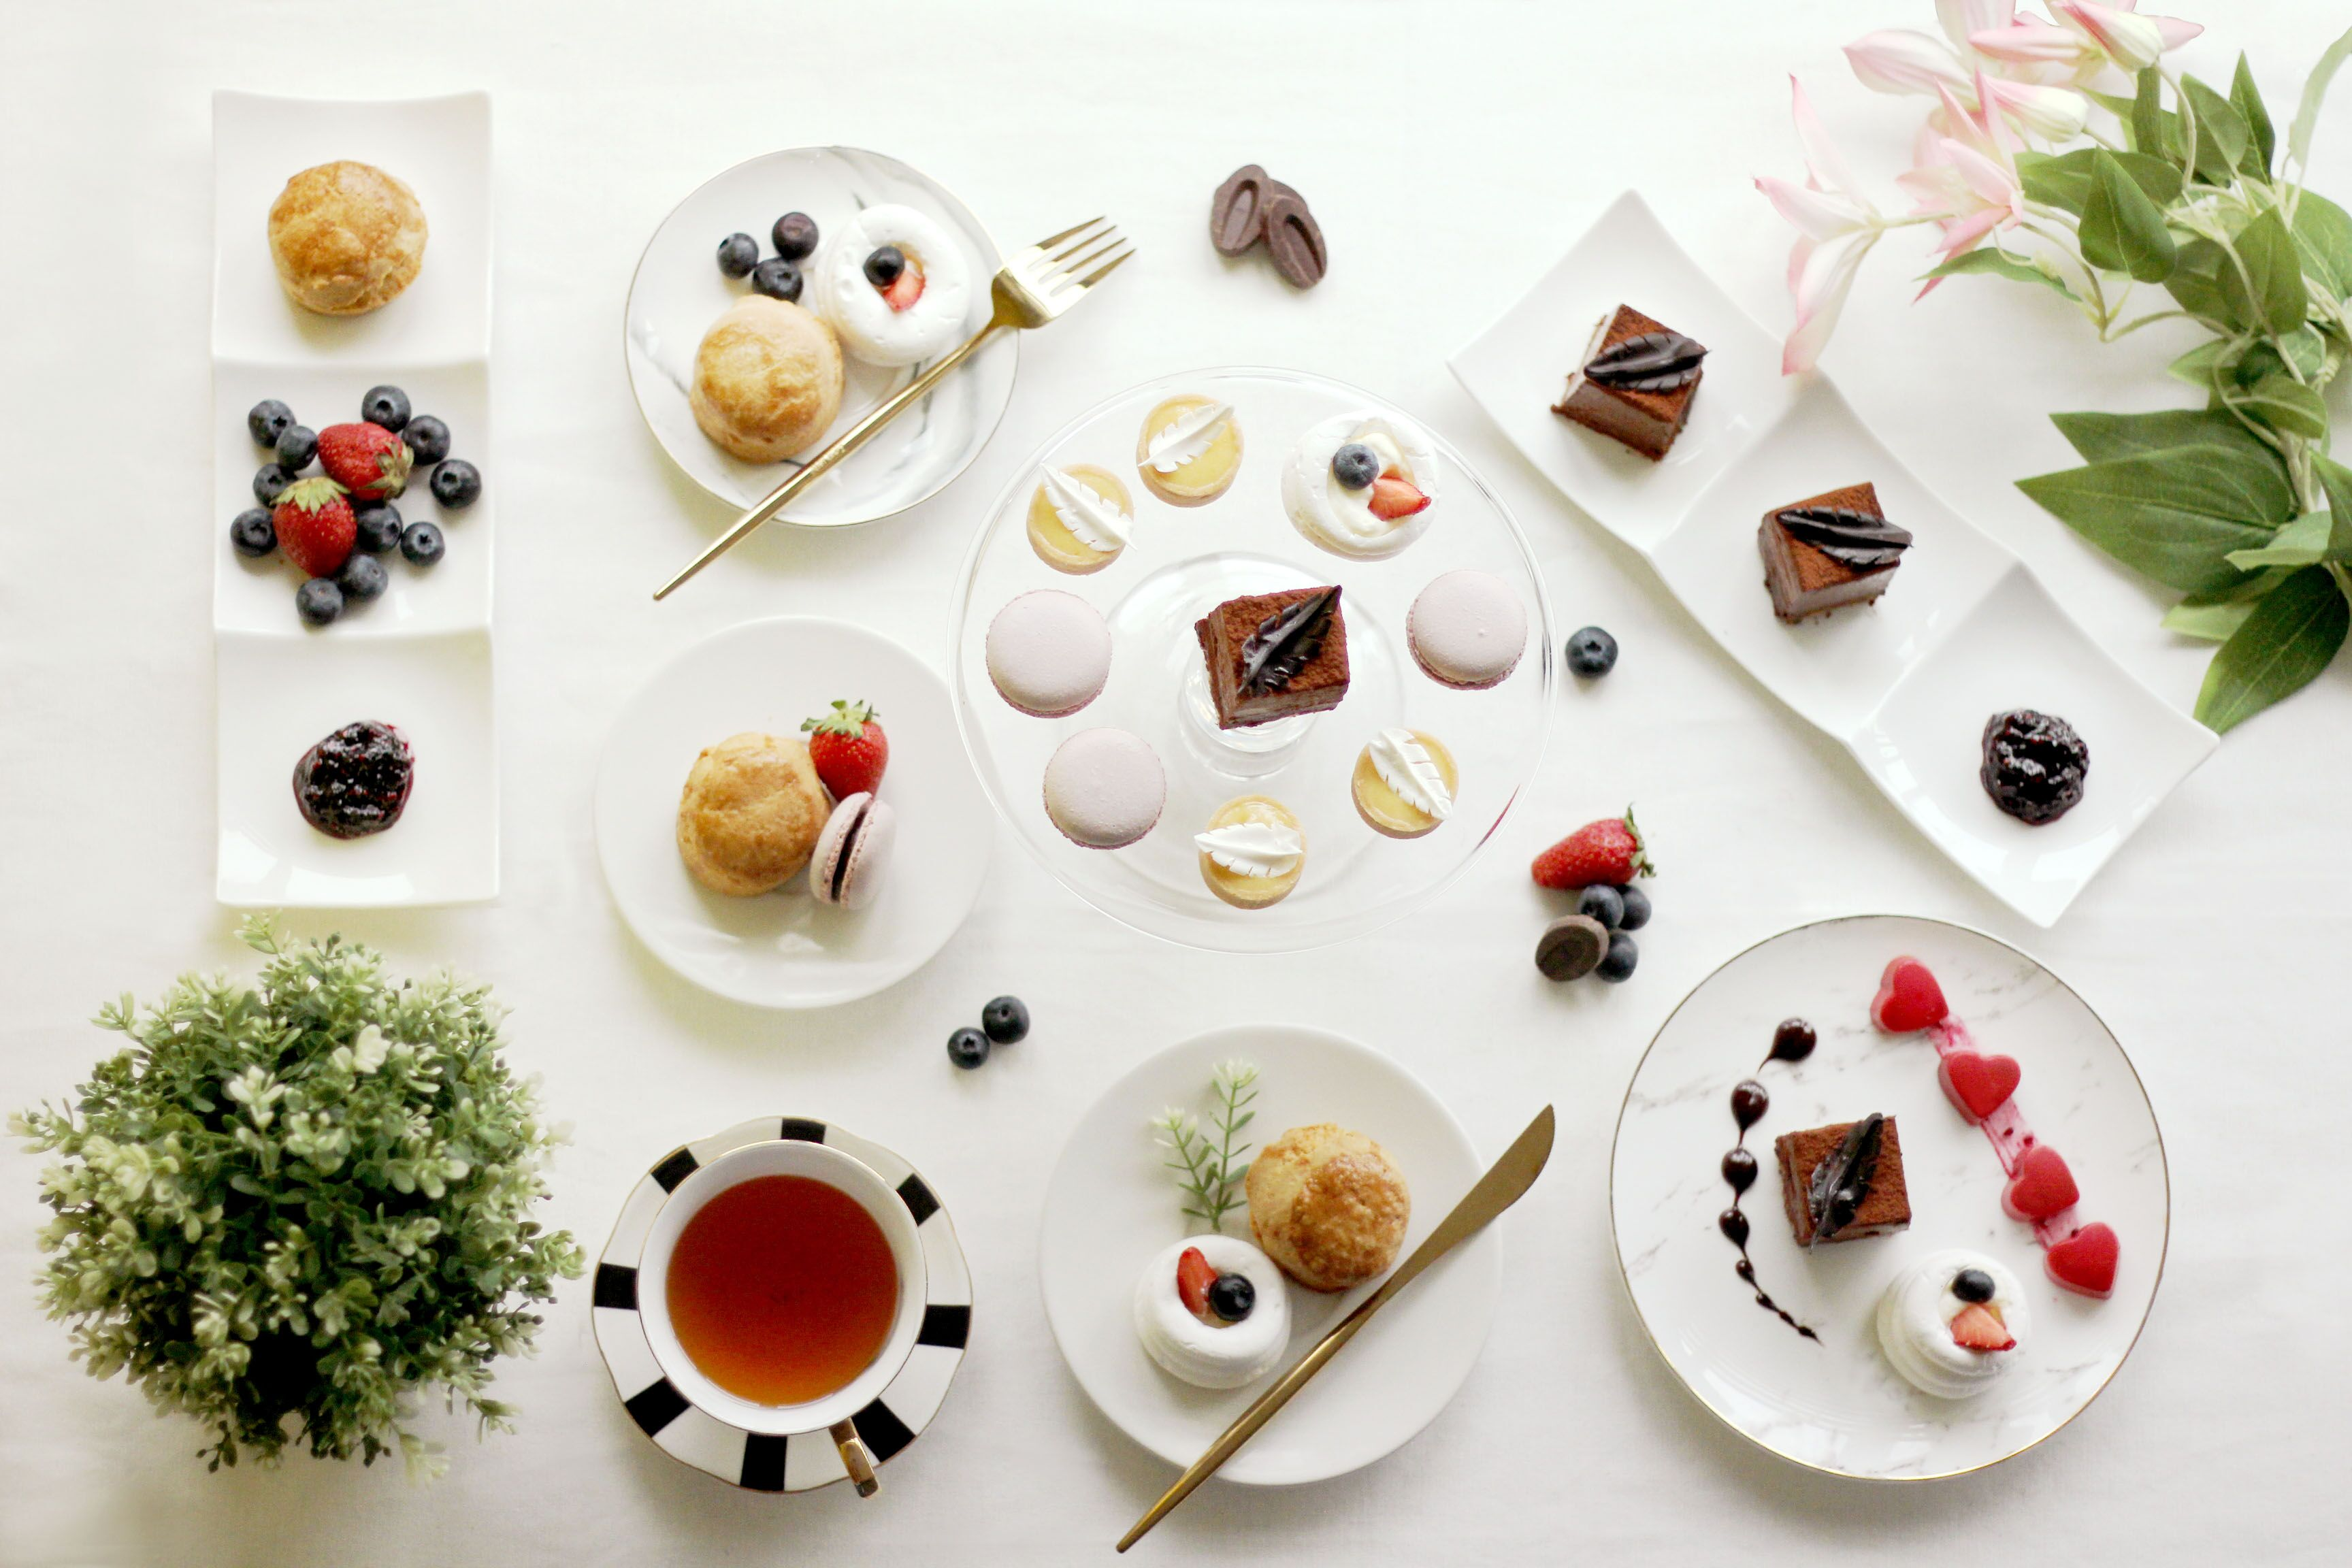 Image from Valen's Patisserie (Provided to SAYS)